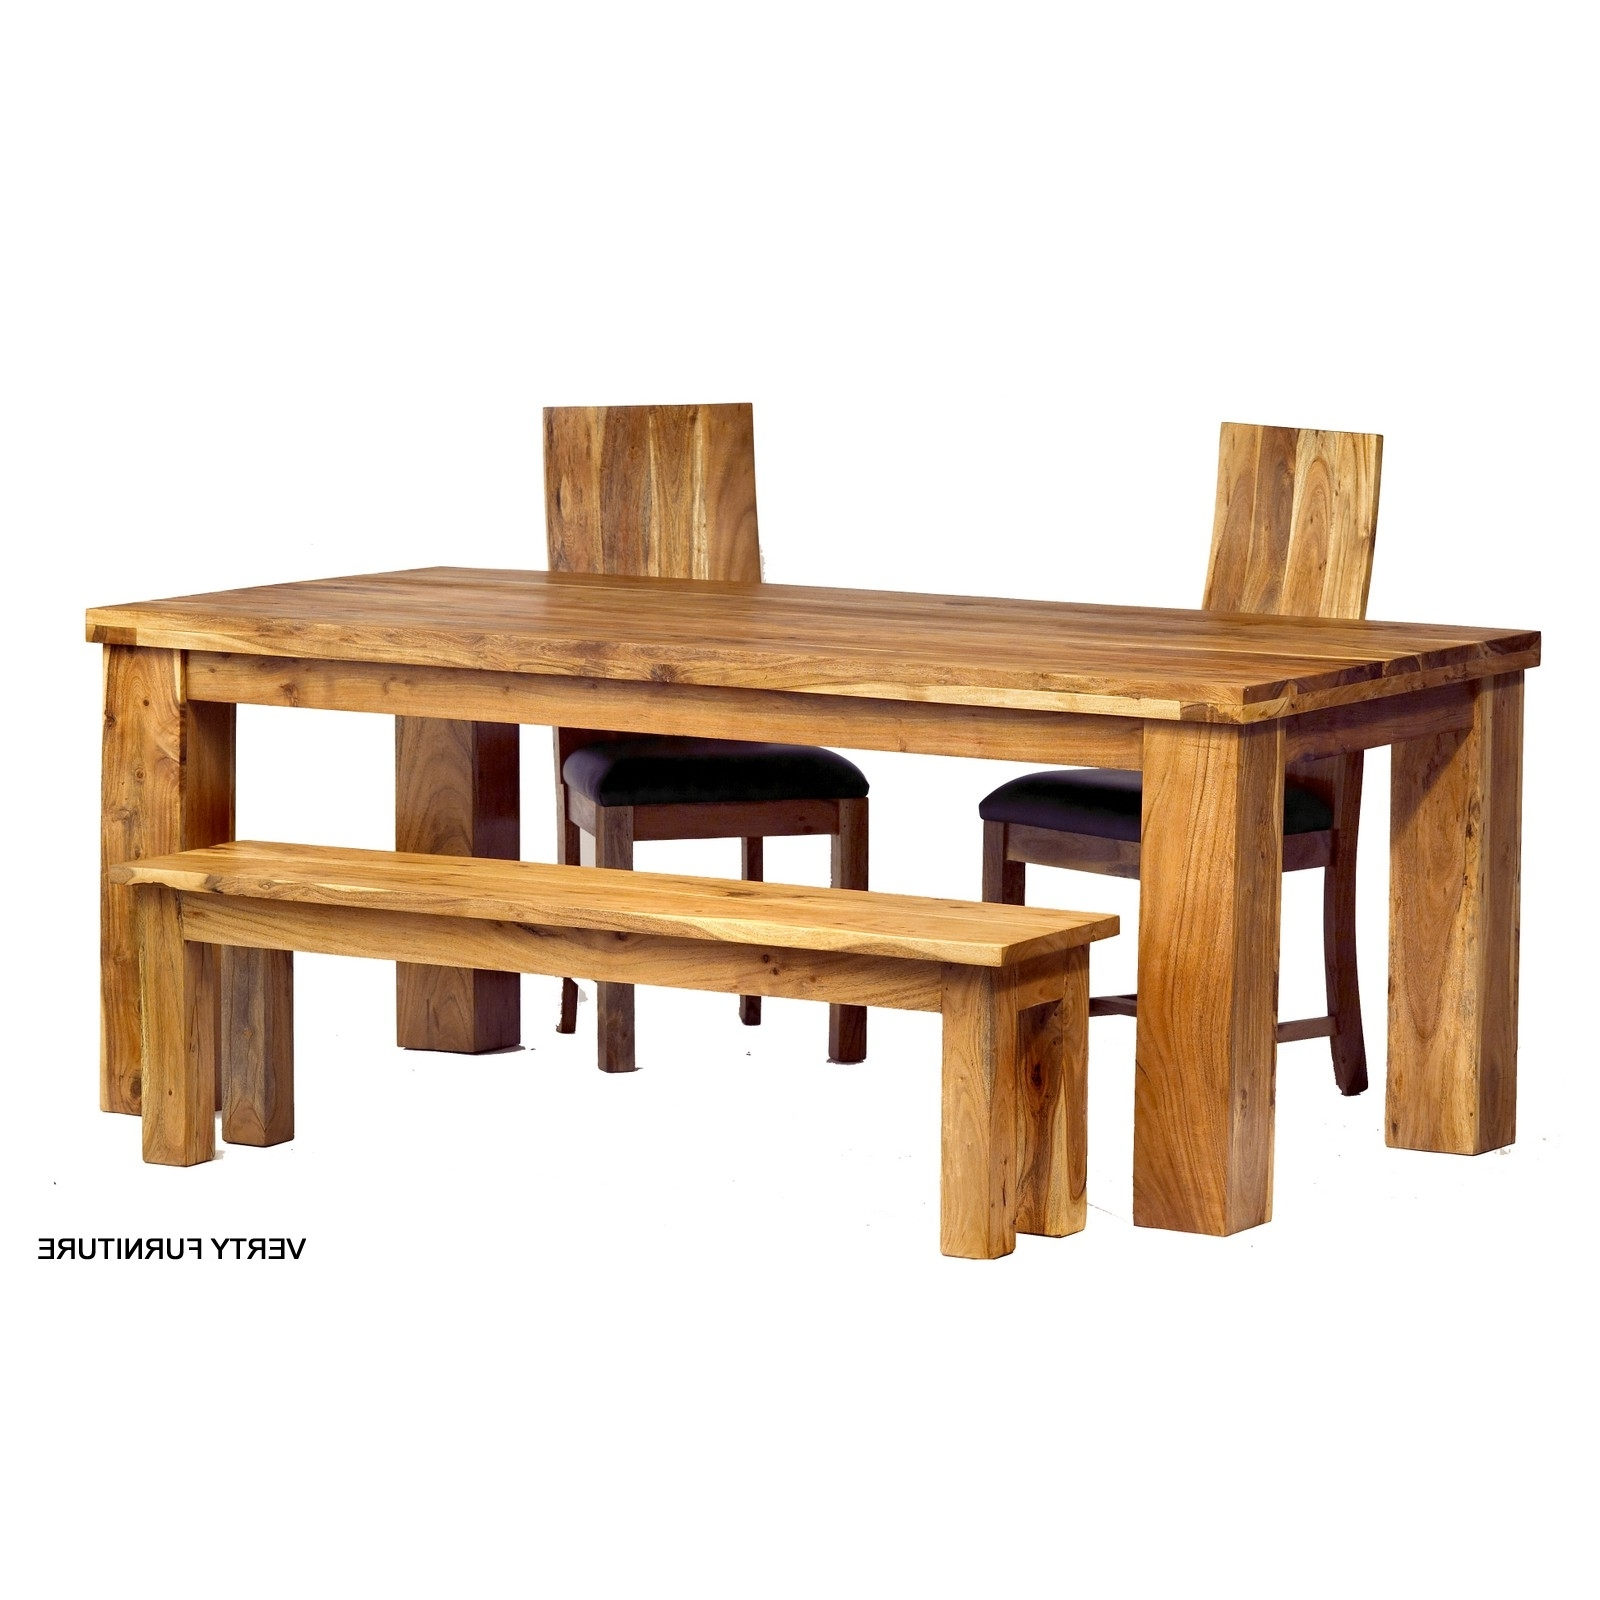 Indian Dining Tables And Chairs For 2018 Acacia Dining Table – Large With Bench And 4 Chairs – Verty Indian (View 20 of 25)